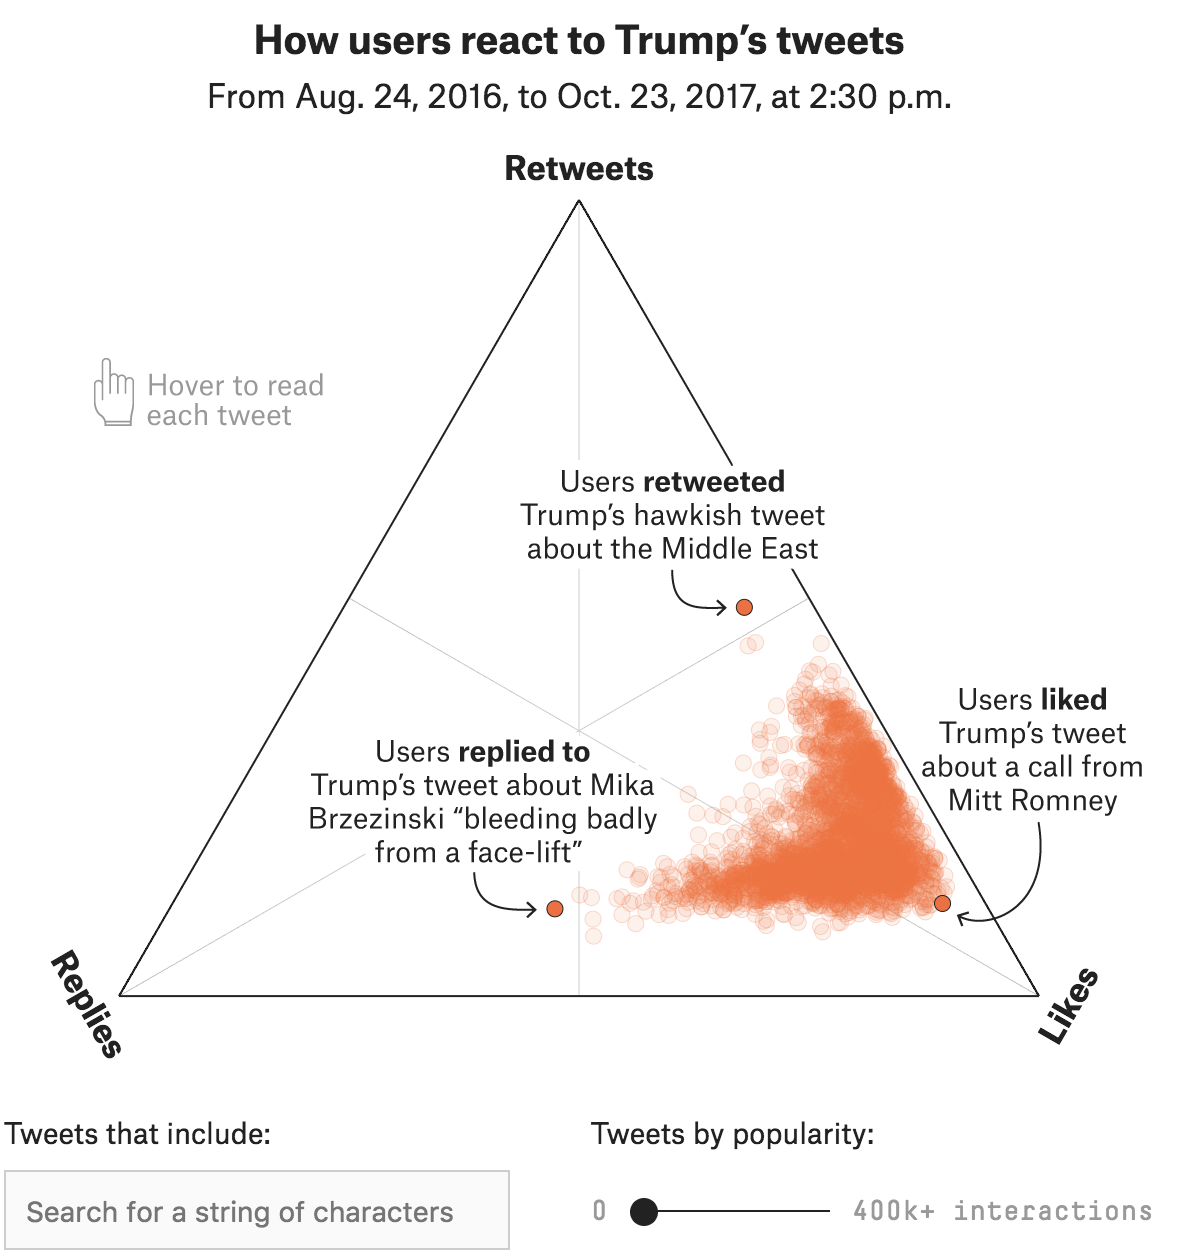 The interactivity makes this chart worth checking out